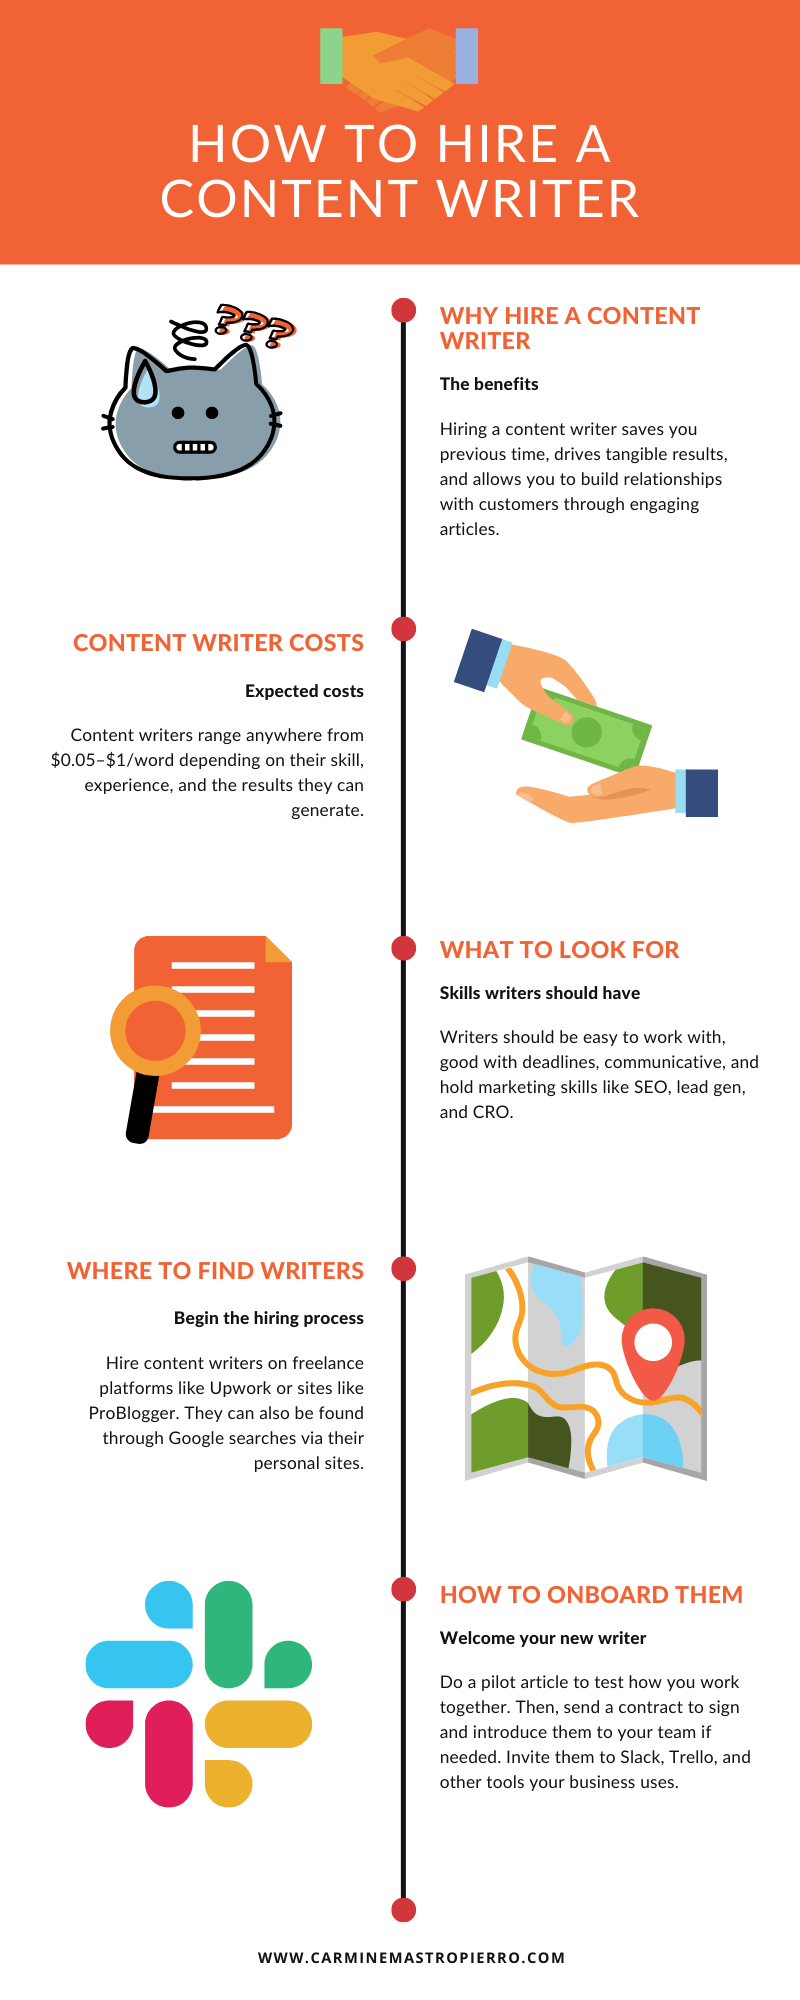 How to hire a content writer